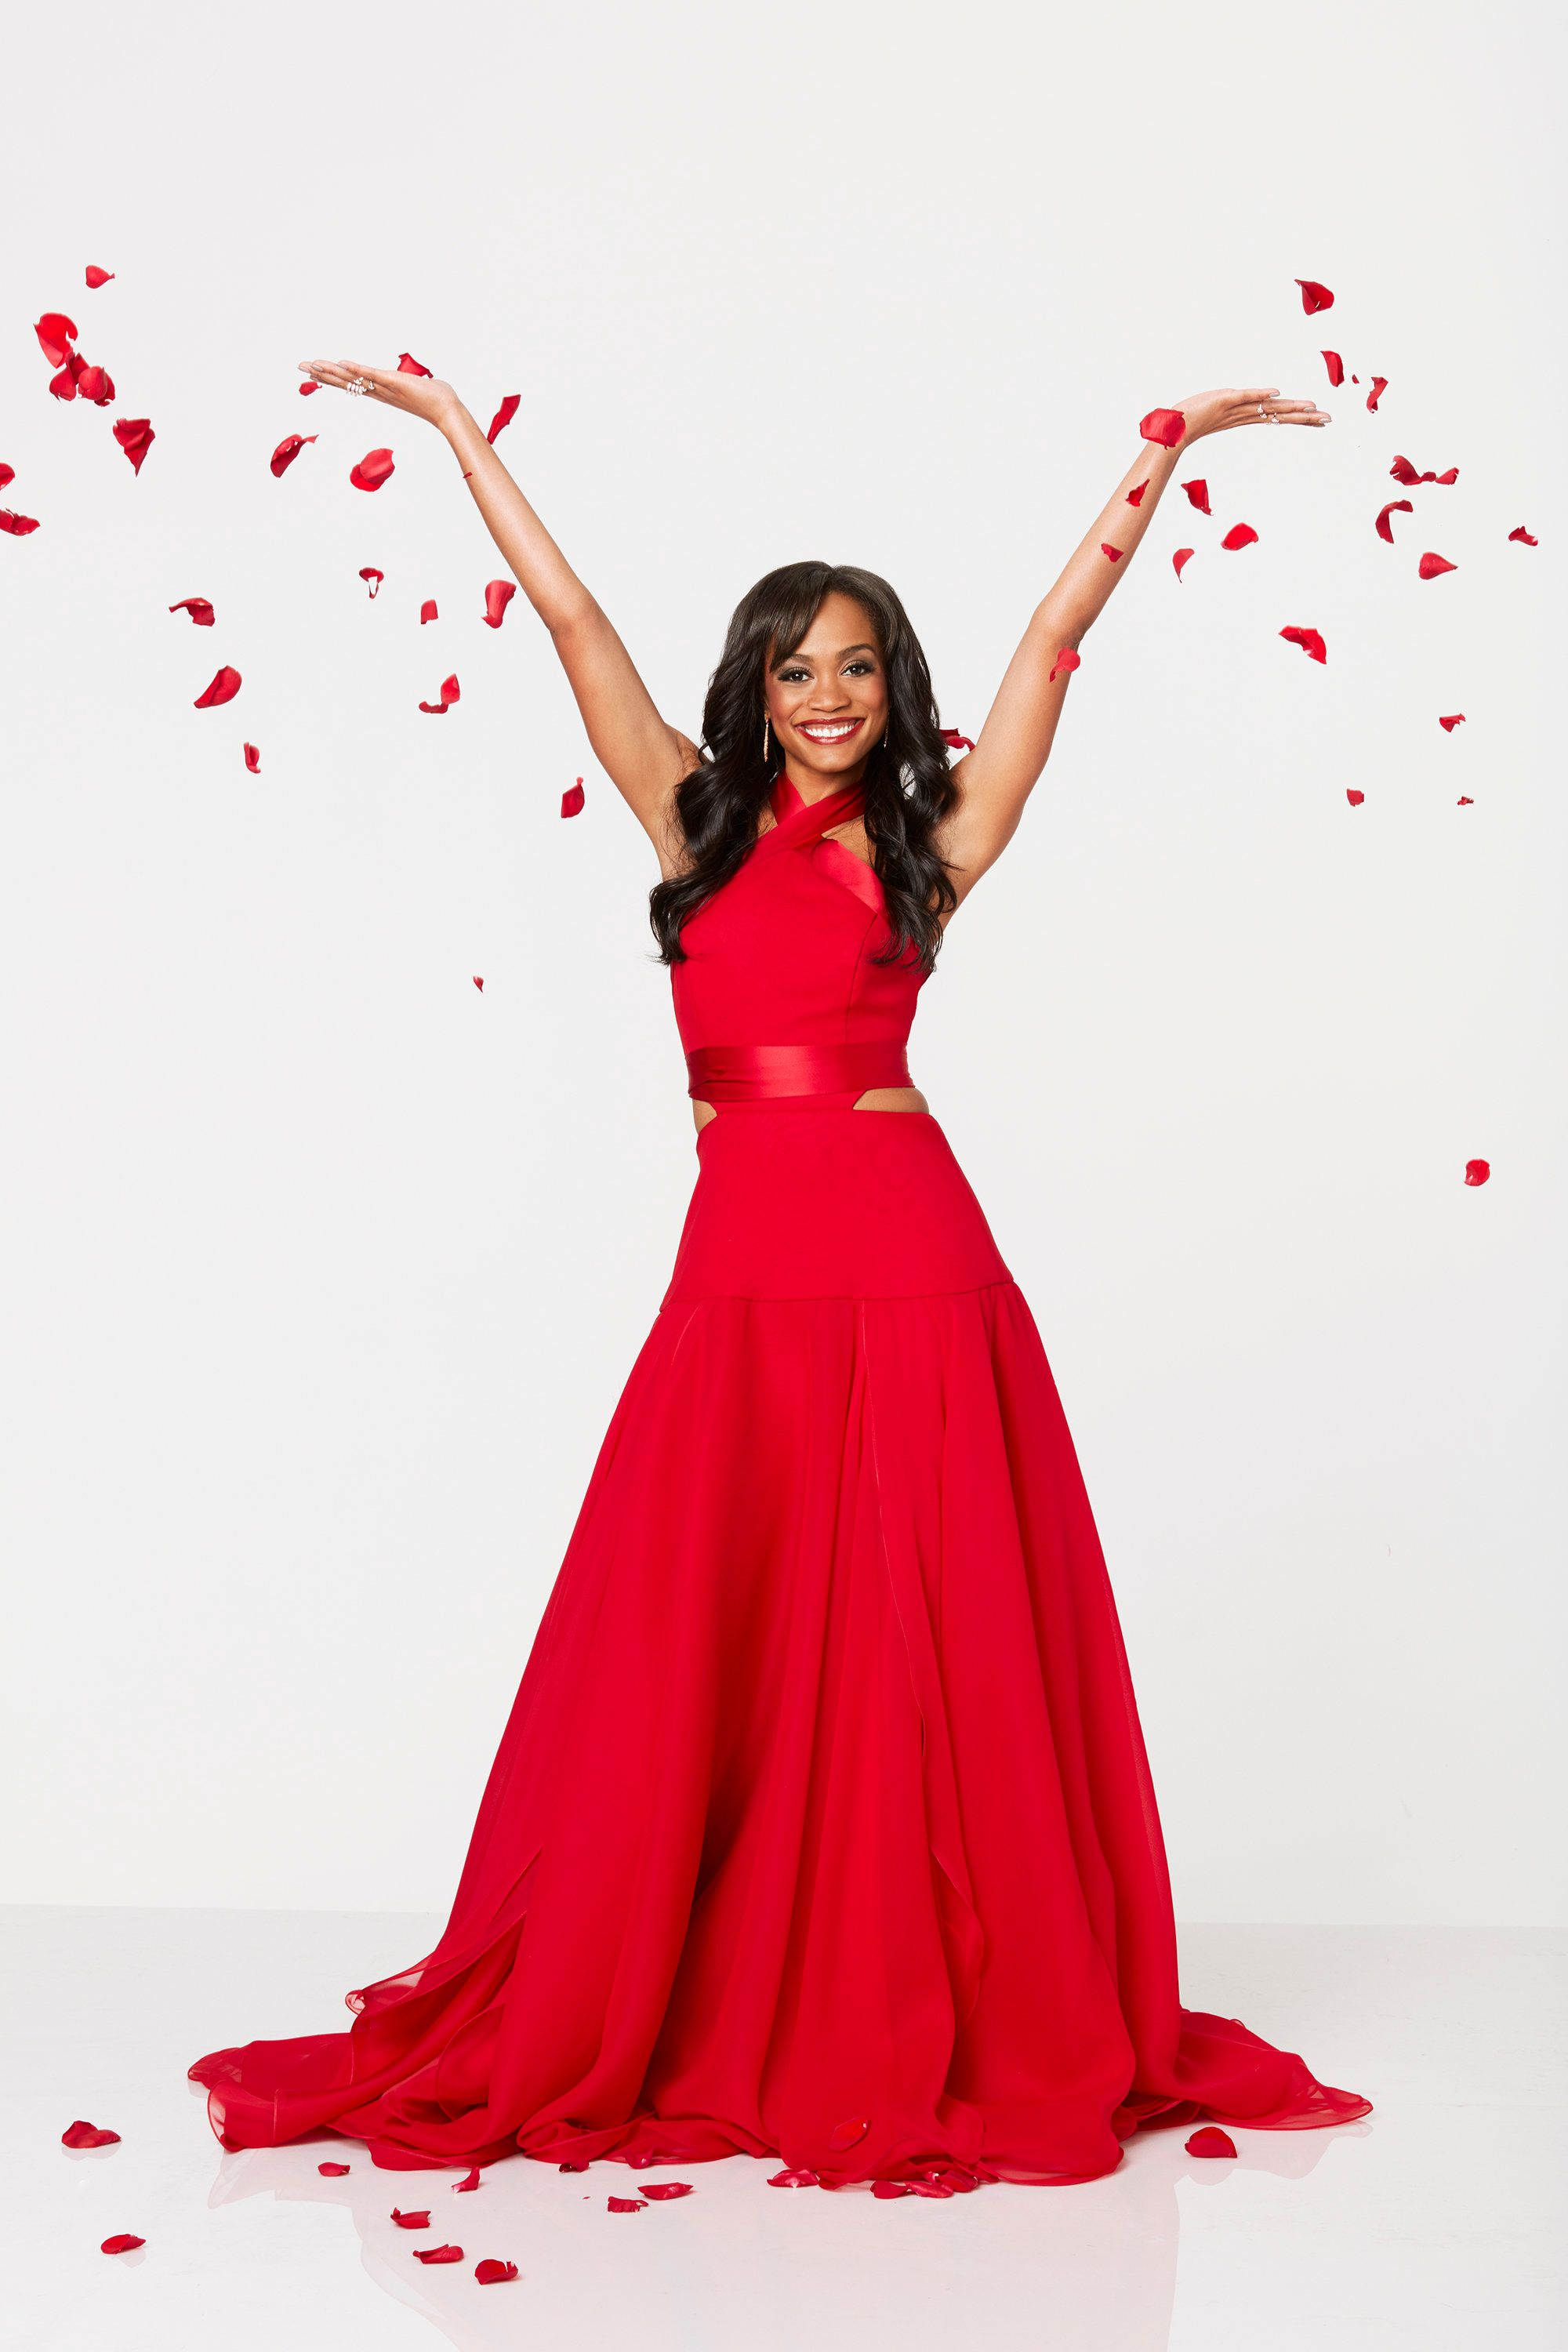 THE BACHELORETTE - Rachel Lindsay, a fan favorite on the 21st season of ABCs hit romance reality series The Bachelor, starring Nick Viall, was named as the next woman to hand out the roses and attempt to find her own happy ending when The Bachelorette premieres for its 13th season, MONDAY, MAY 22 (9:00-11:00 p.m. EST), on The ABC Television Network. (Craig Sjodin/ABC via Getty Images) RACHEL LINDSEY